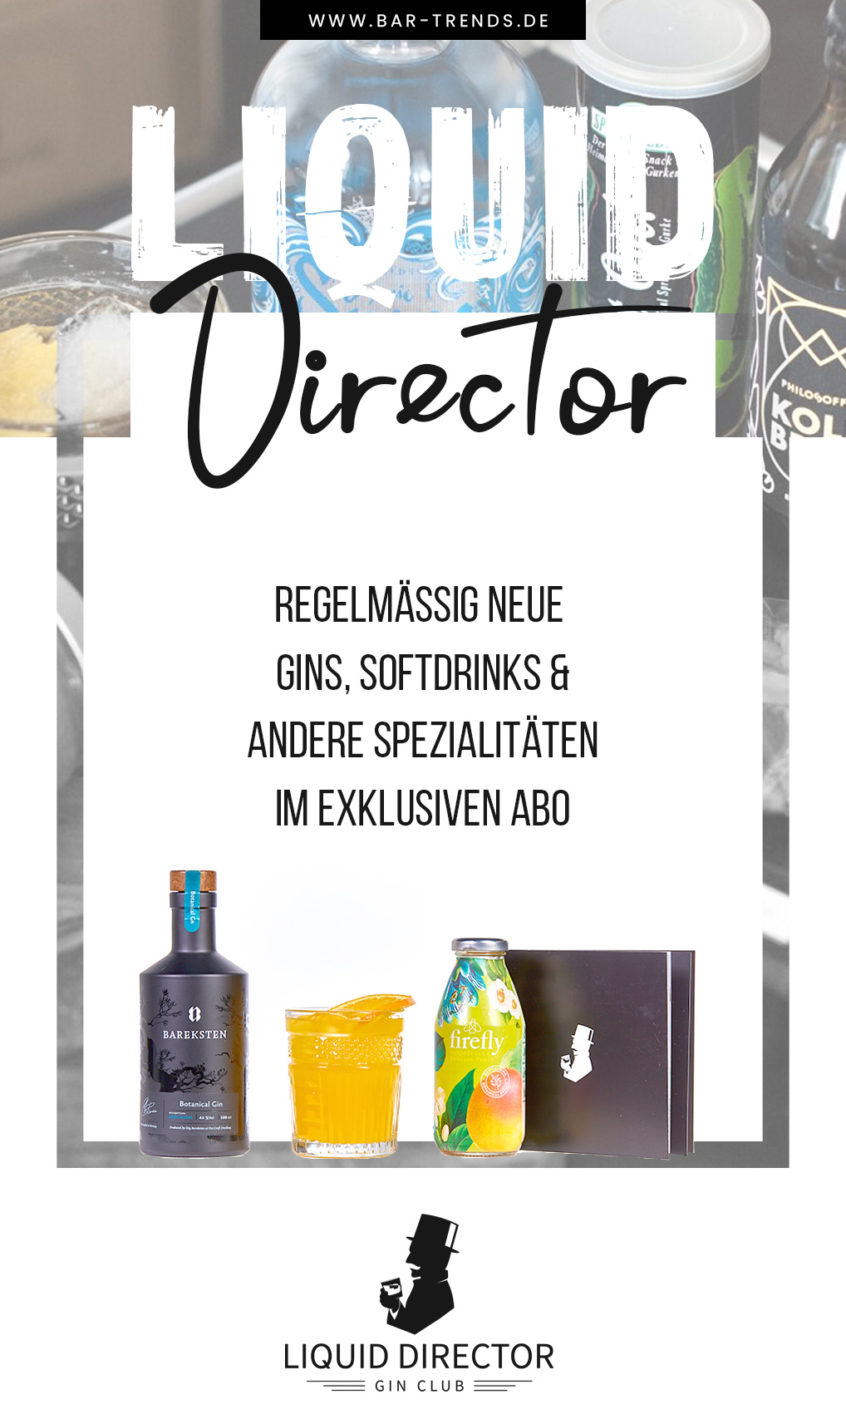 Liquid-director-gin-club-abo-pinterest-banner